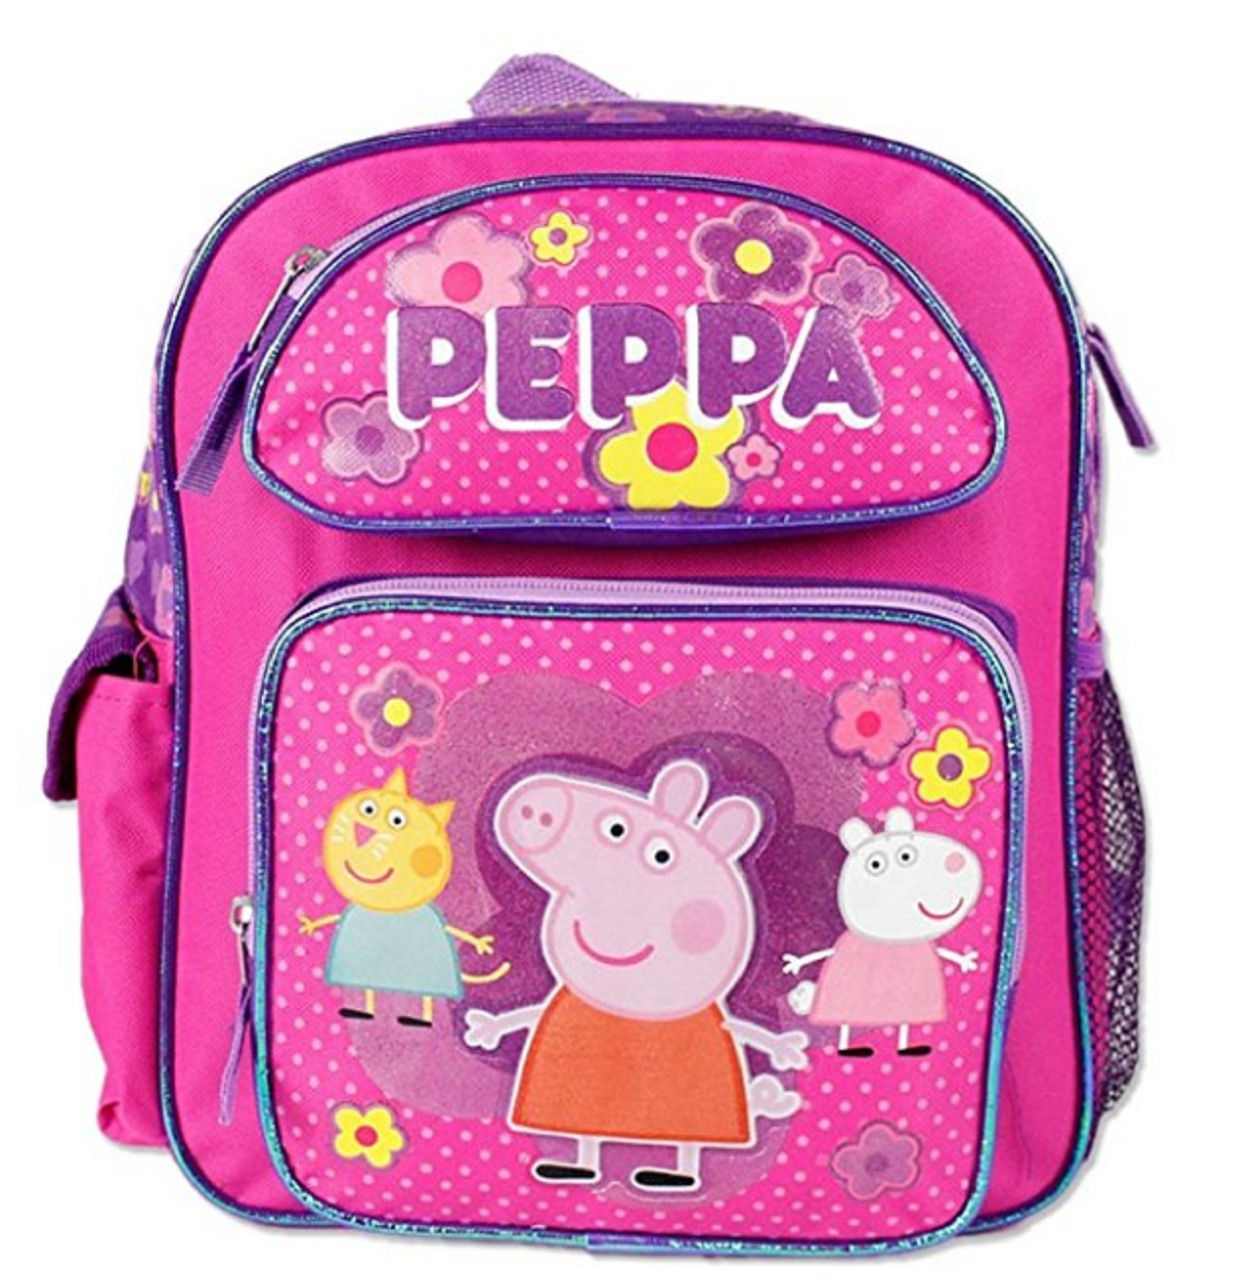 Backpack - Peppa Pig - Small 12 Inch - Glittery